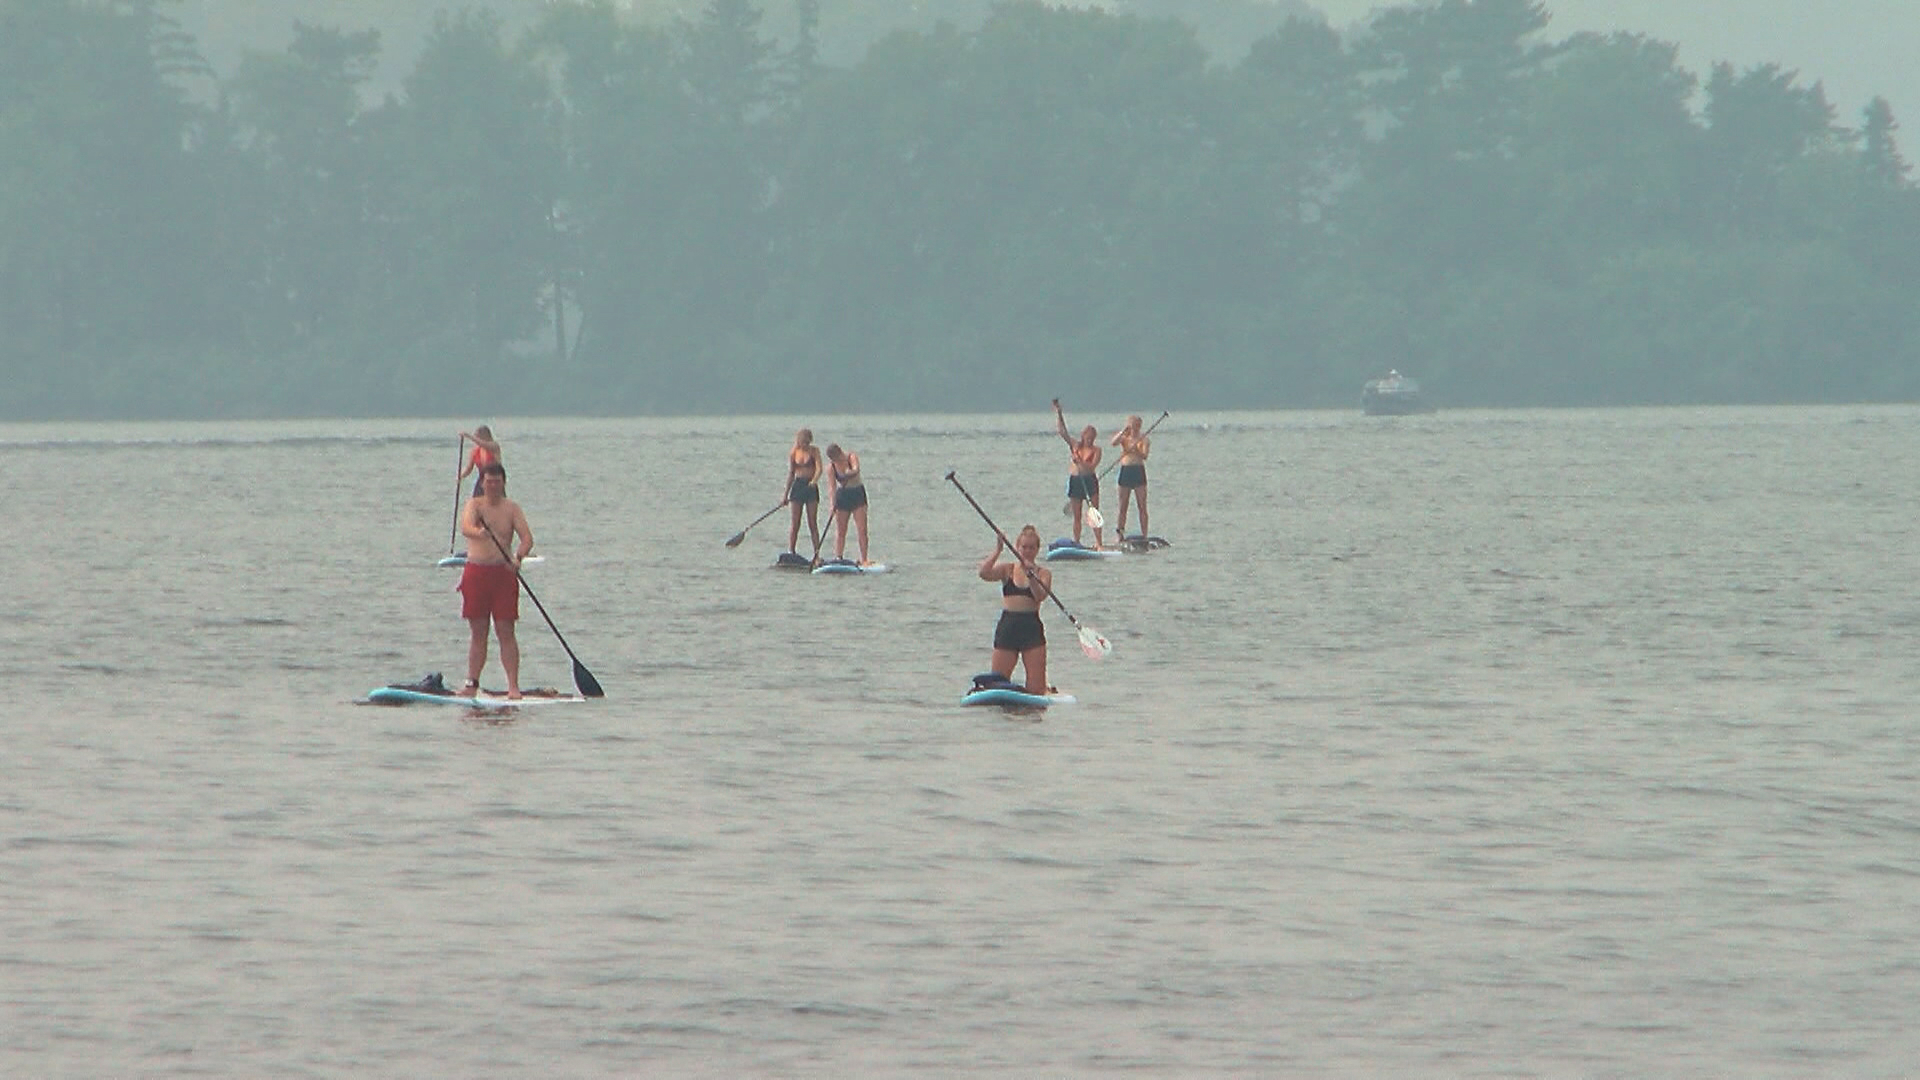 Smoky-Hazy-Poor-Air-Quality-Paddleboarders